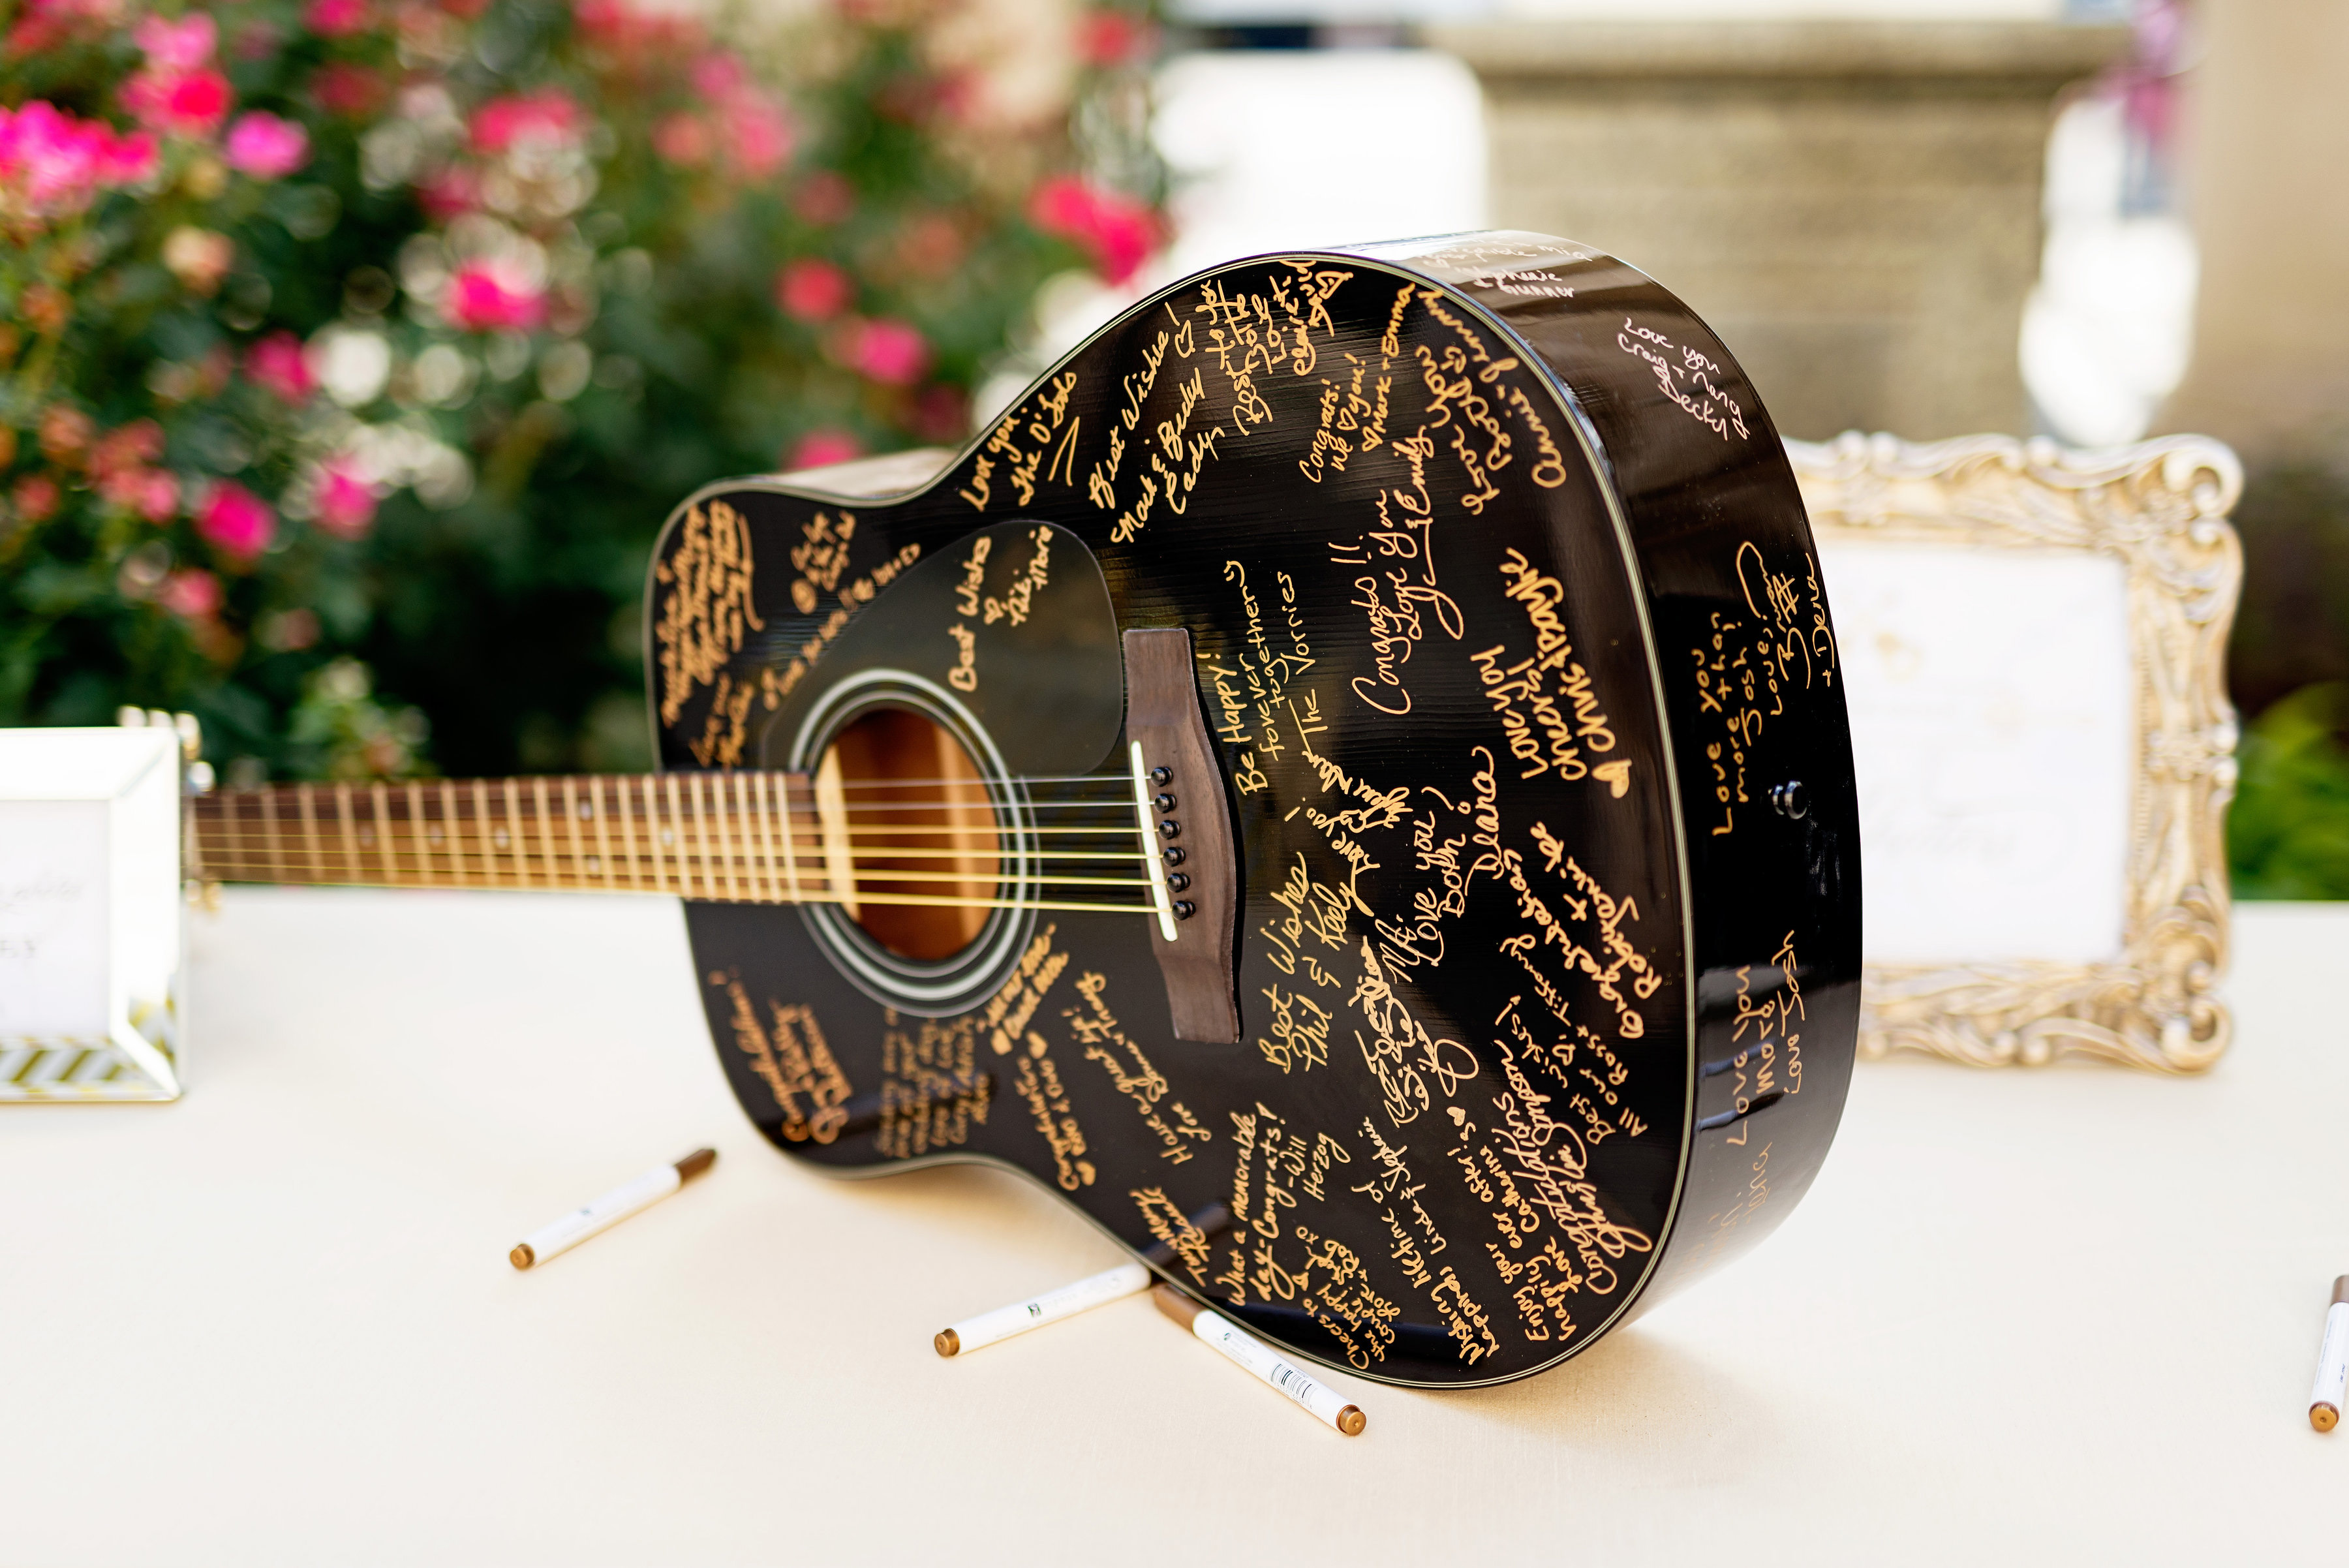 Black guitar with gold writing wedding guest book alternative guestbook ideas